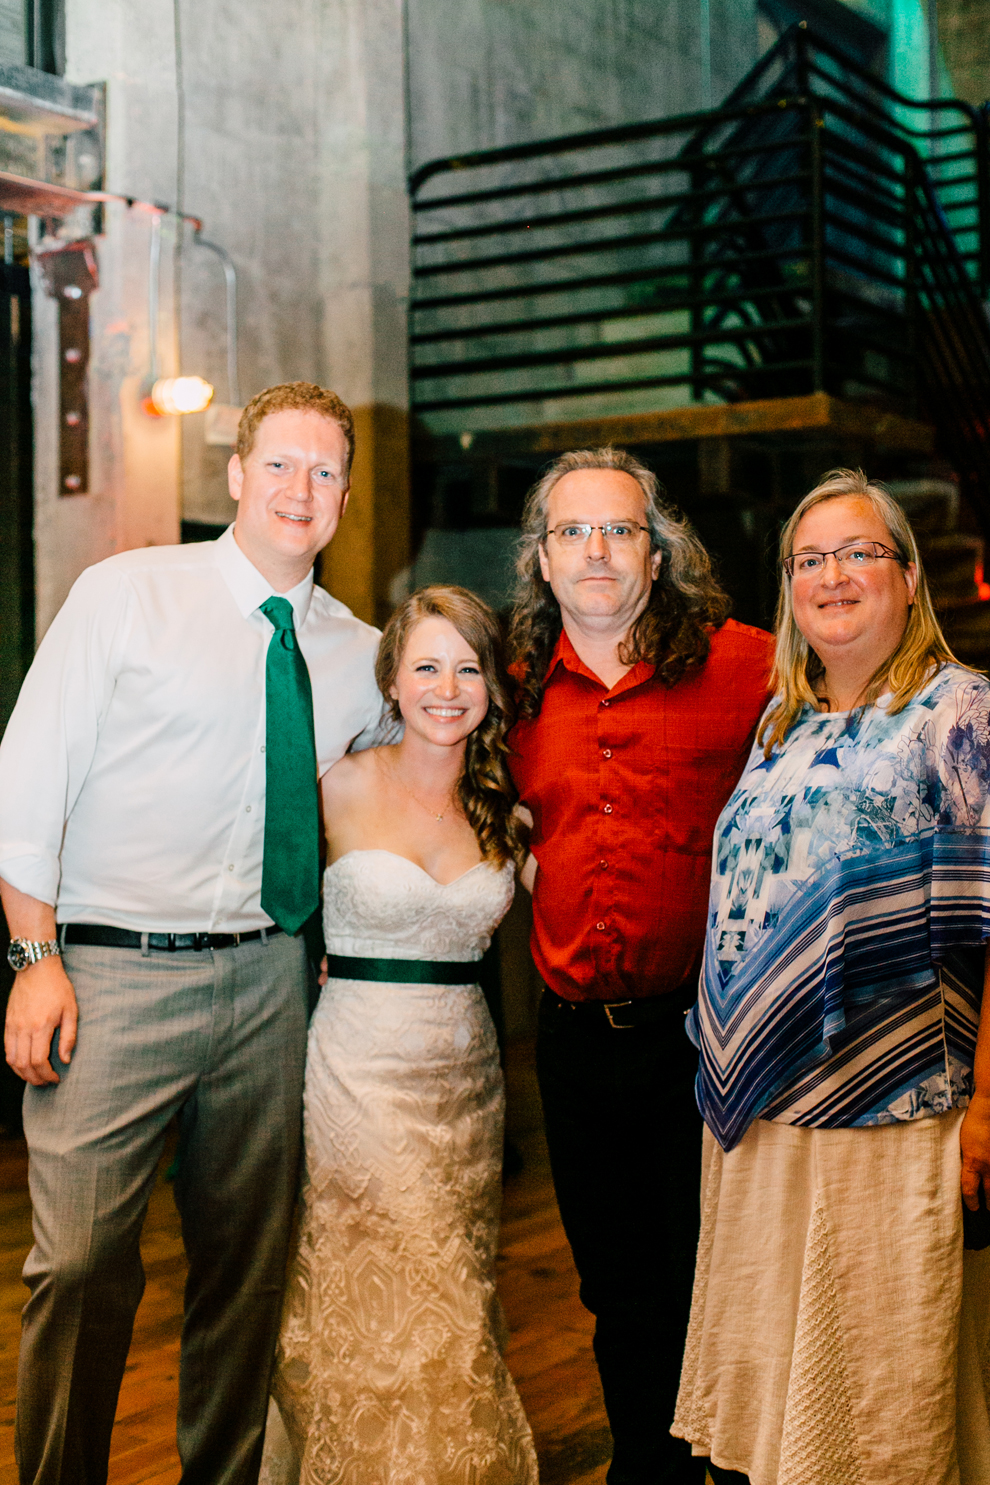 091-fremont-foundry-seattle-wedding-katheryn-moran-photography-anthony-kaitlin.jpg